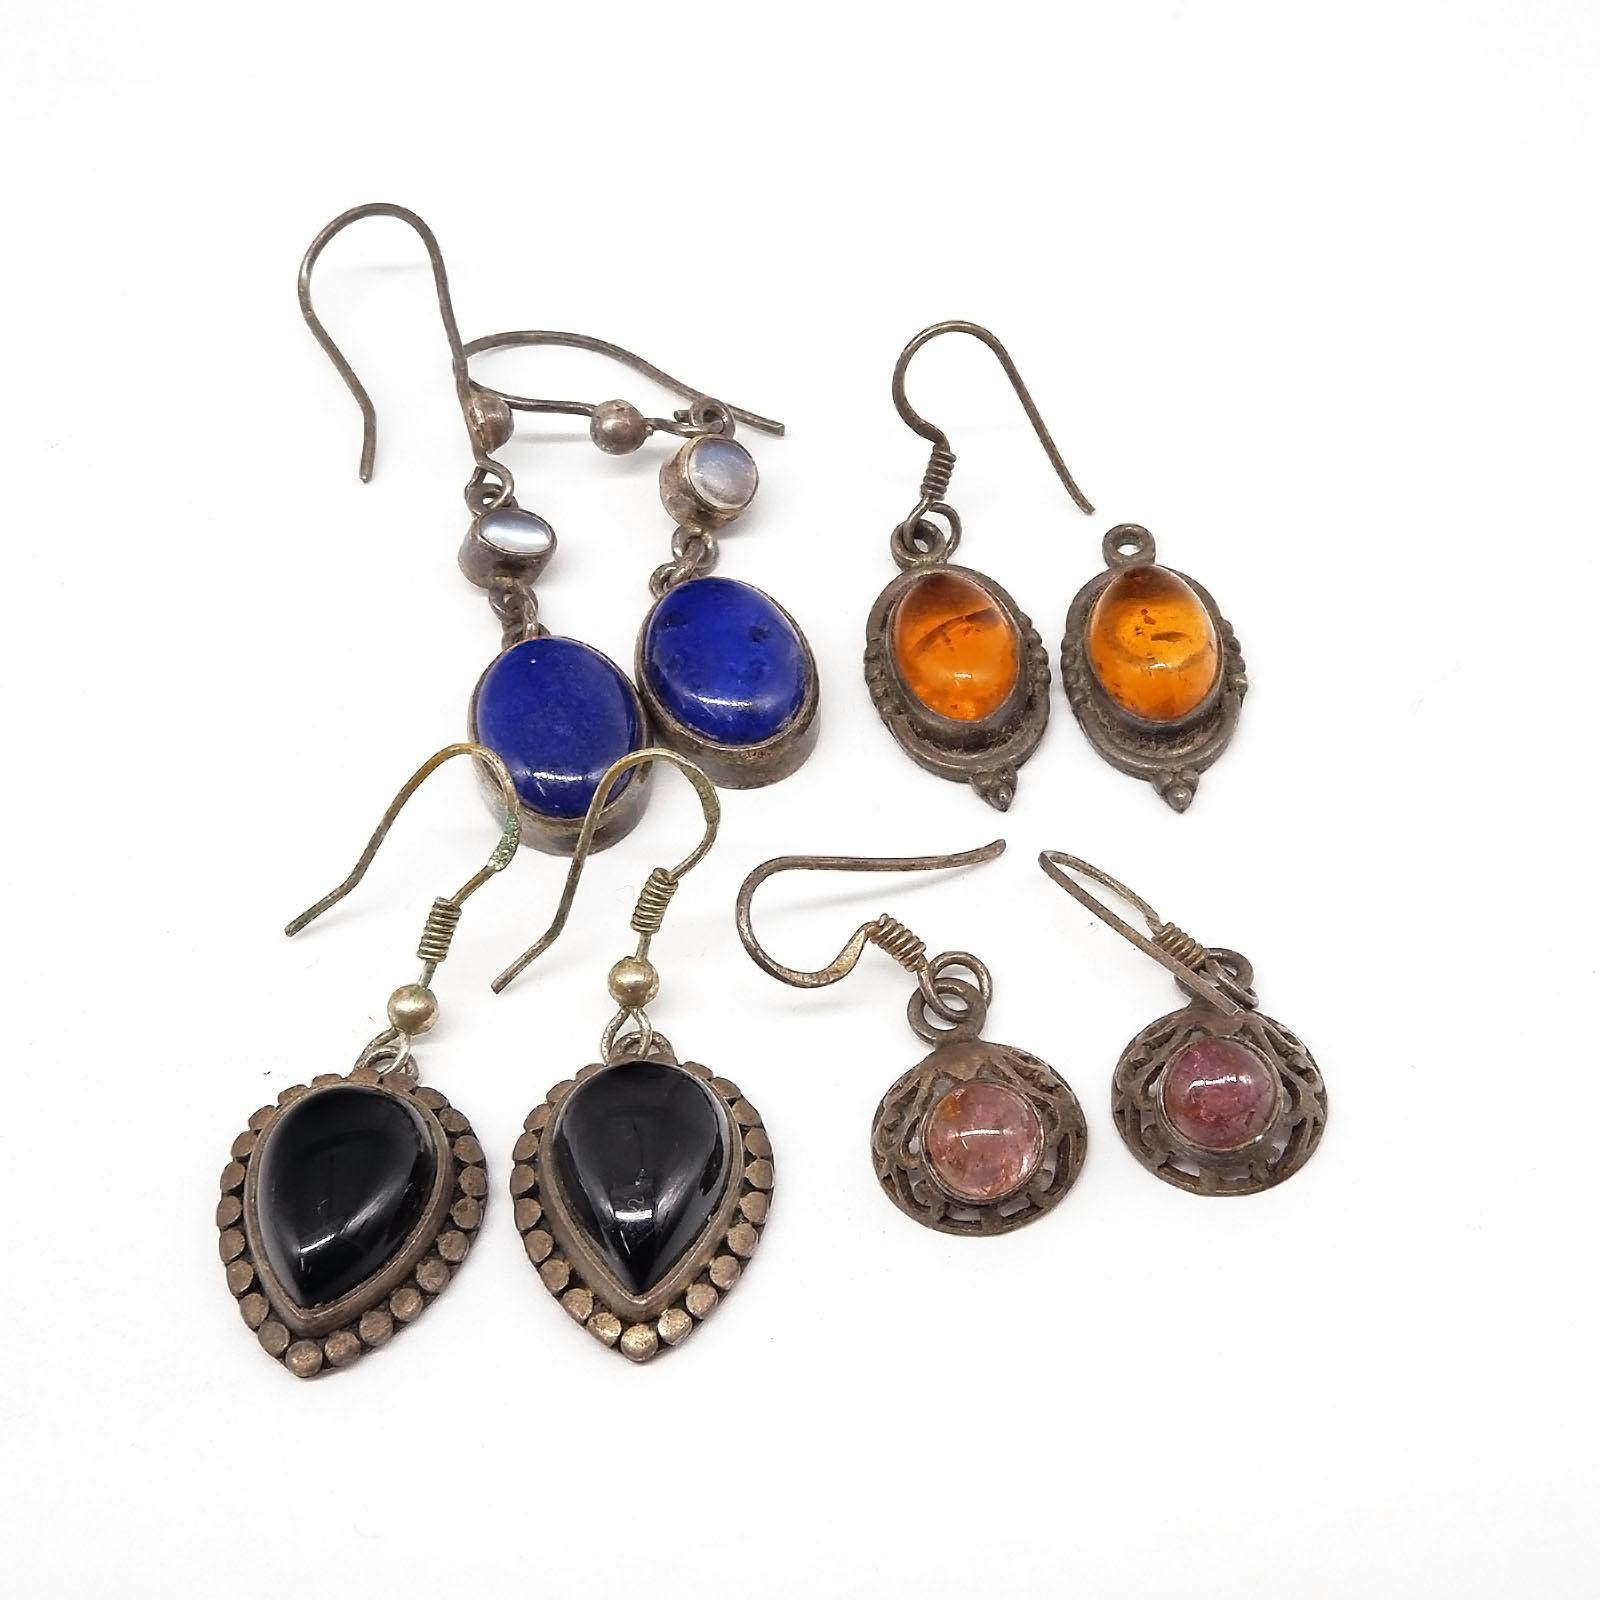 'Four Pairs of Silver Drop Earrings, Lapis Lazuli, Onyx, Amber and Pink Tourmaline '